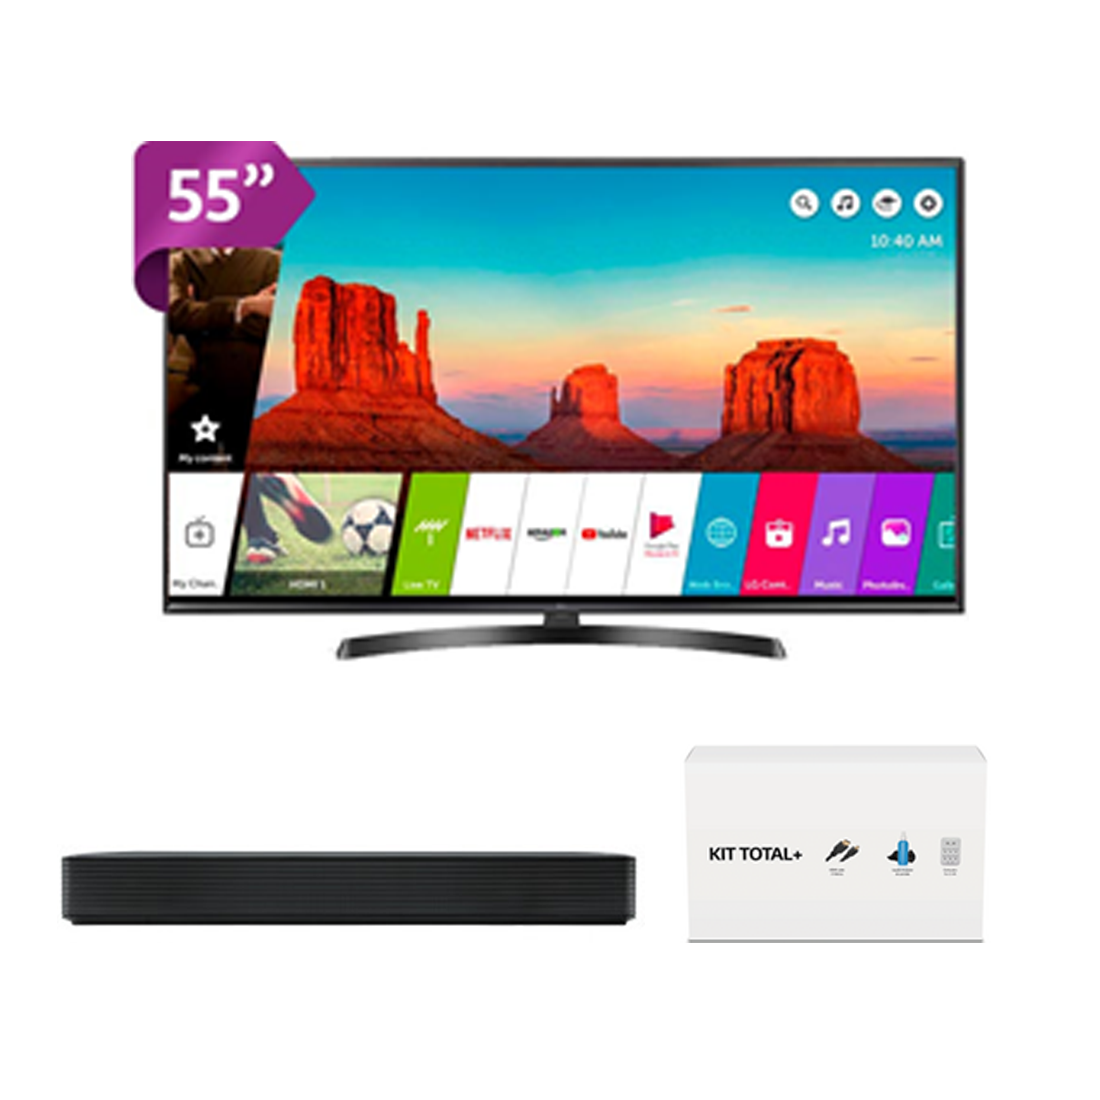 "Smart TV LG 55UM7470 55"" Ultra HD LED 4K HDR +Barra LG+ 3REGALOS"